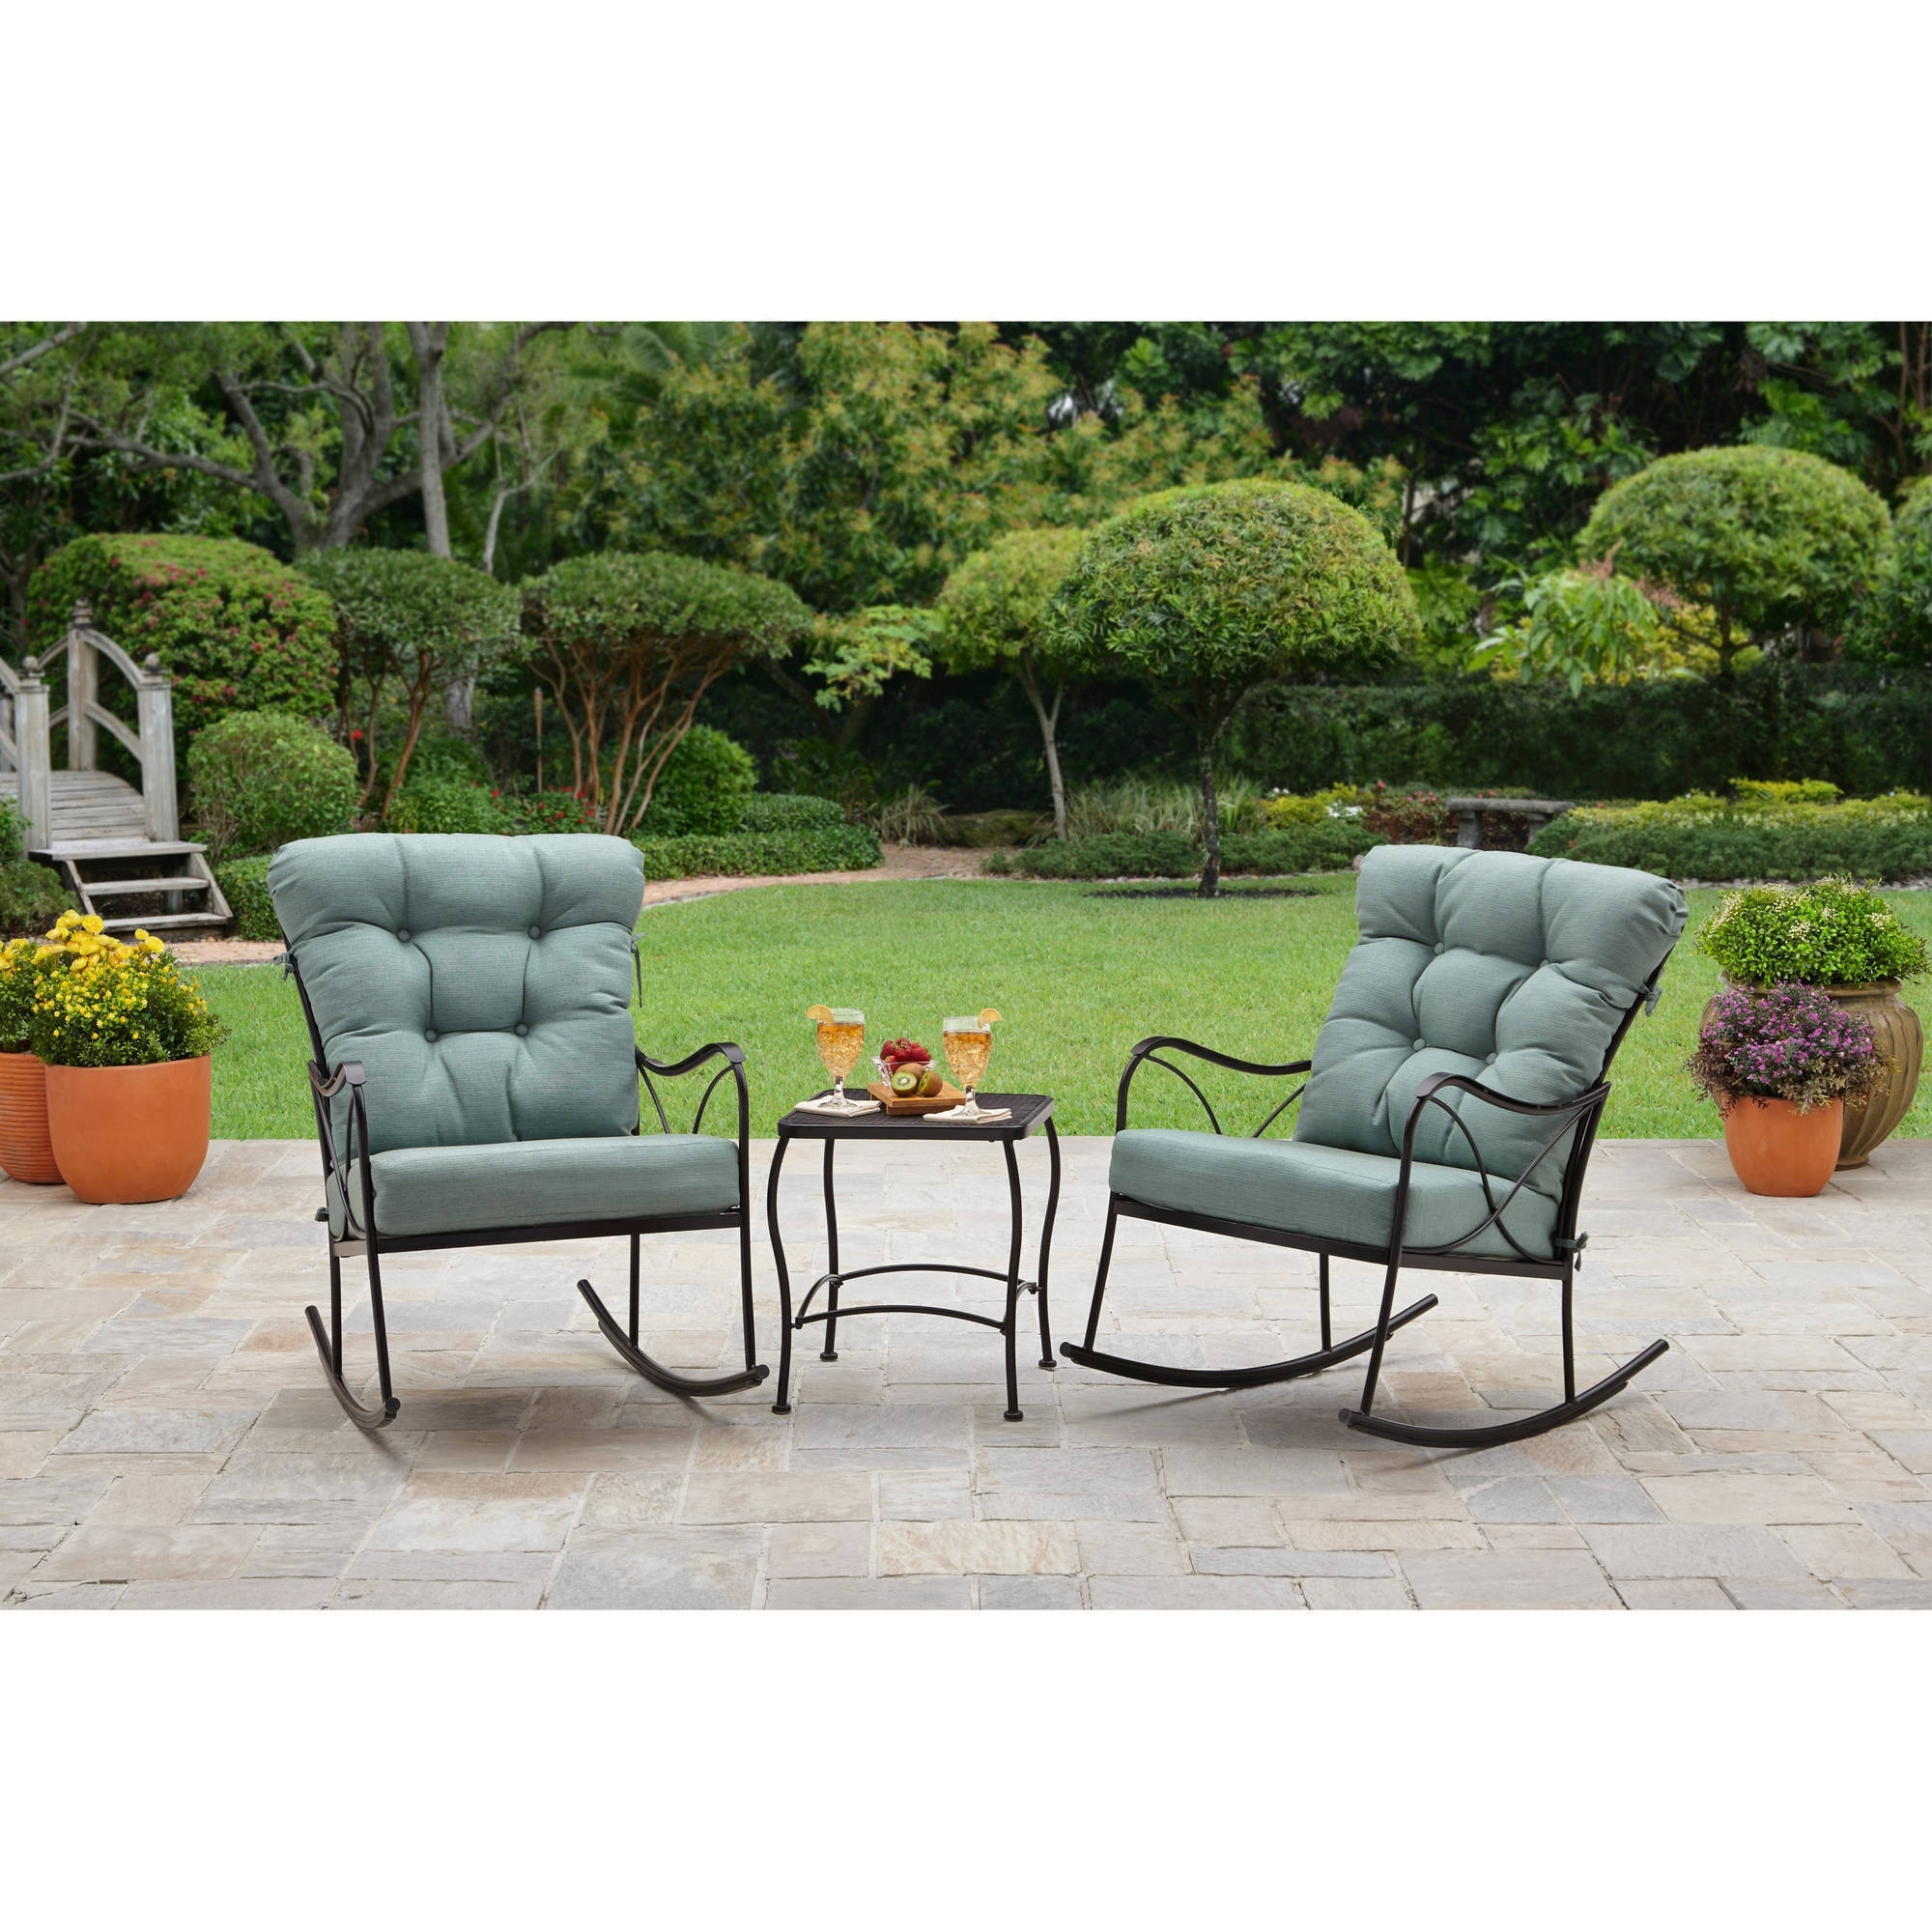 Used Patio Rocking Chairs Pertaining To Most Popular Better Homes And Gardens Seacliff Patio Furniture Collection (View 11 of 20)